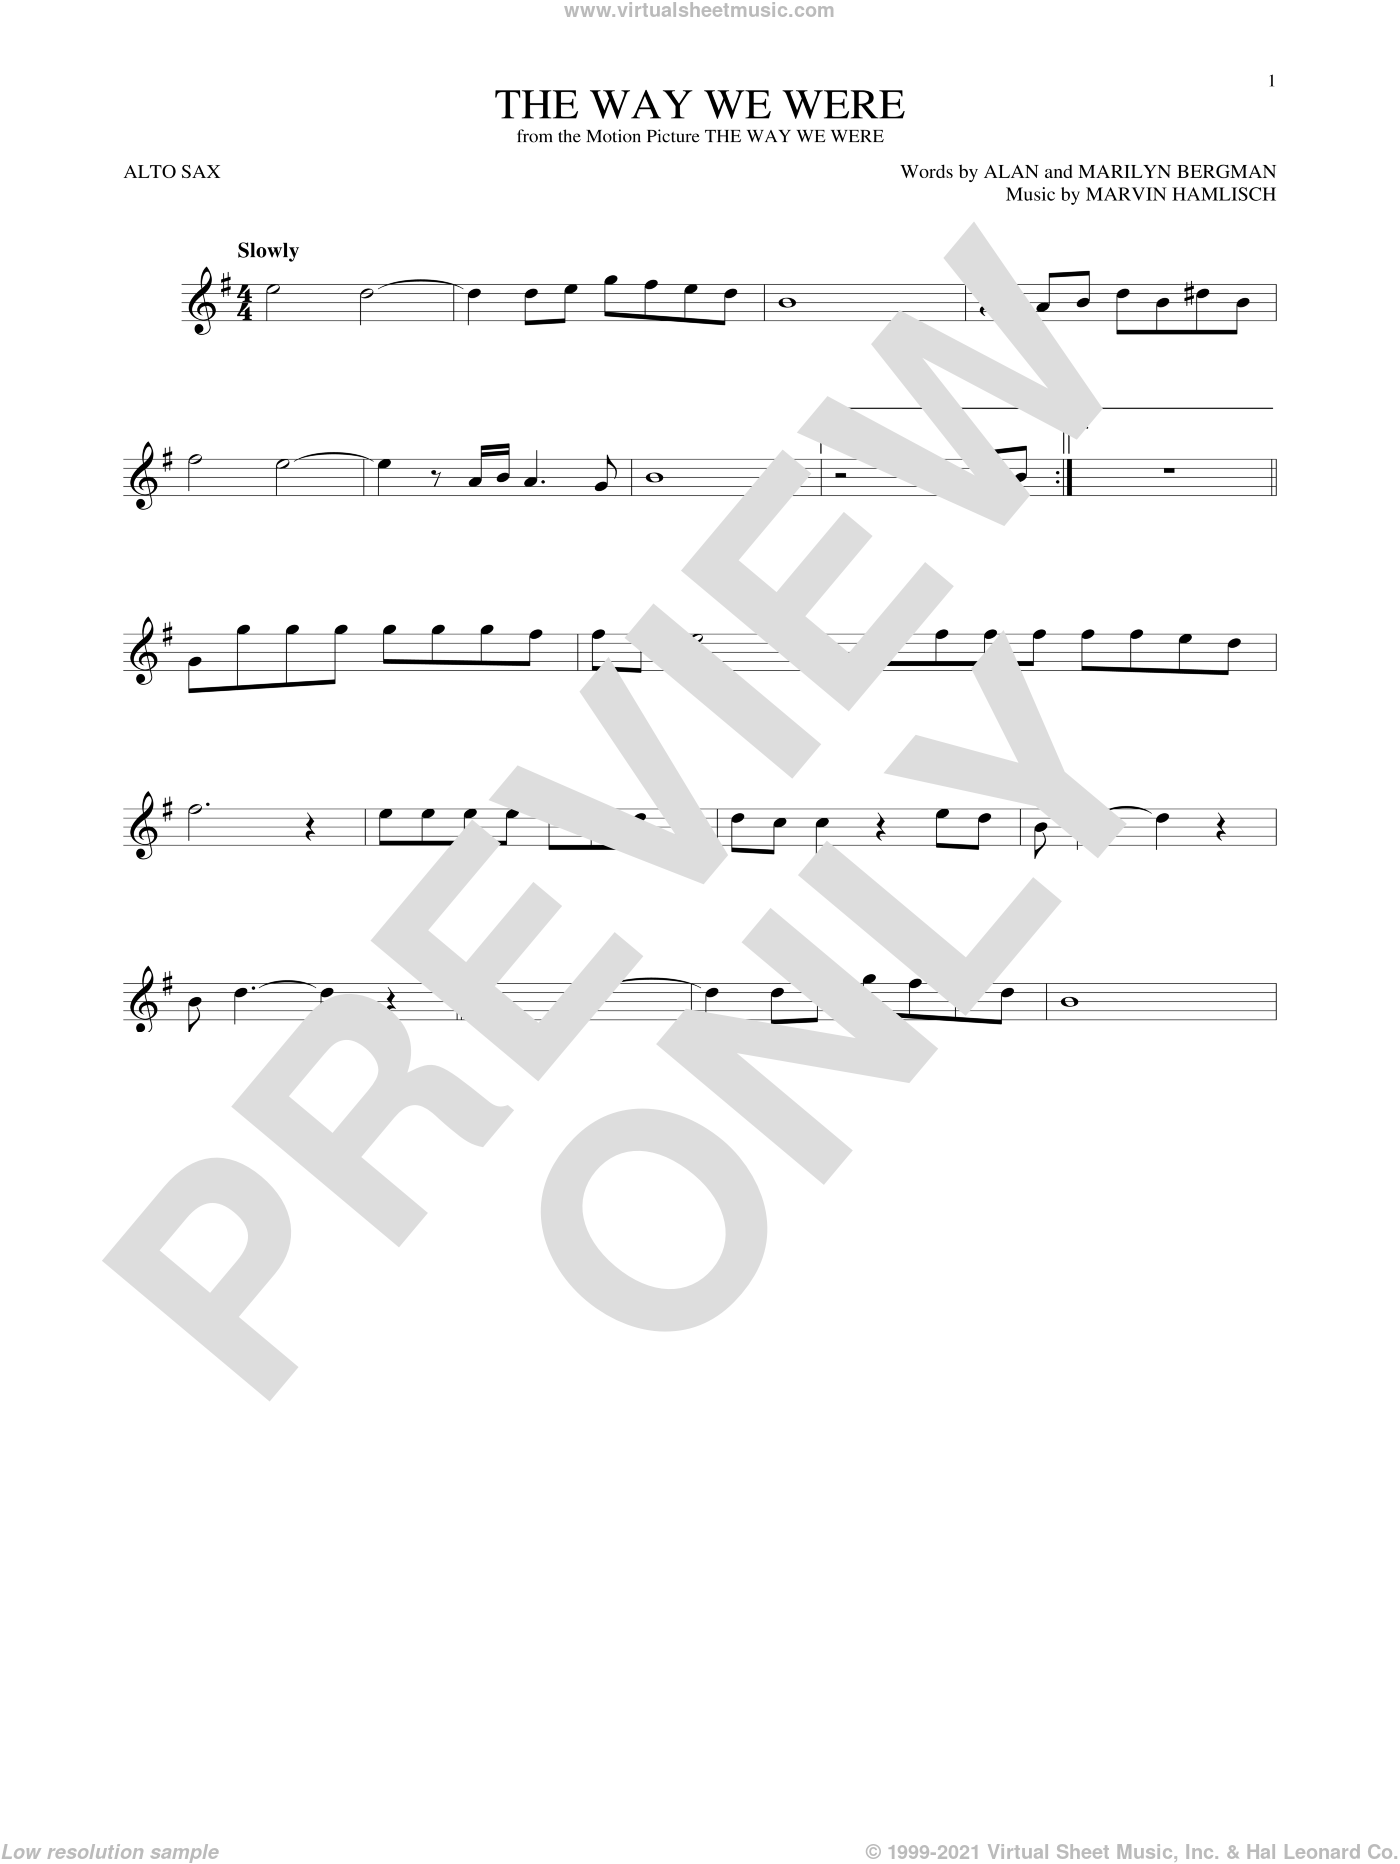 The Way We Were sheet music for alto saxophone solo by Barbra Streisand, Alan Bergman, Marilyn Bergman and Marvin Hamlisch, intermediate skill level